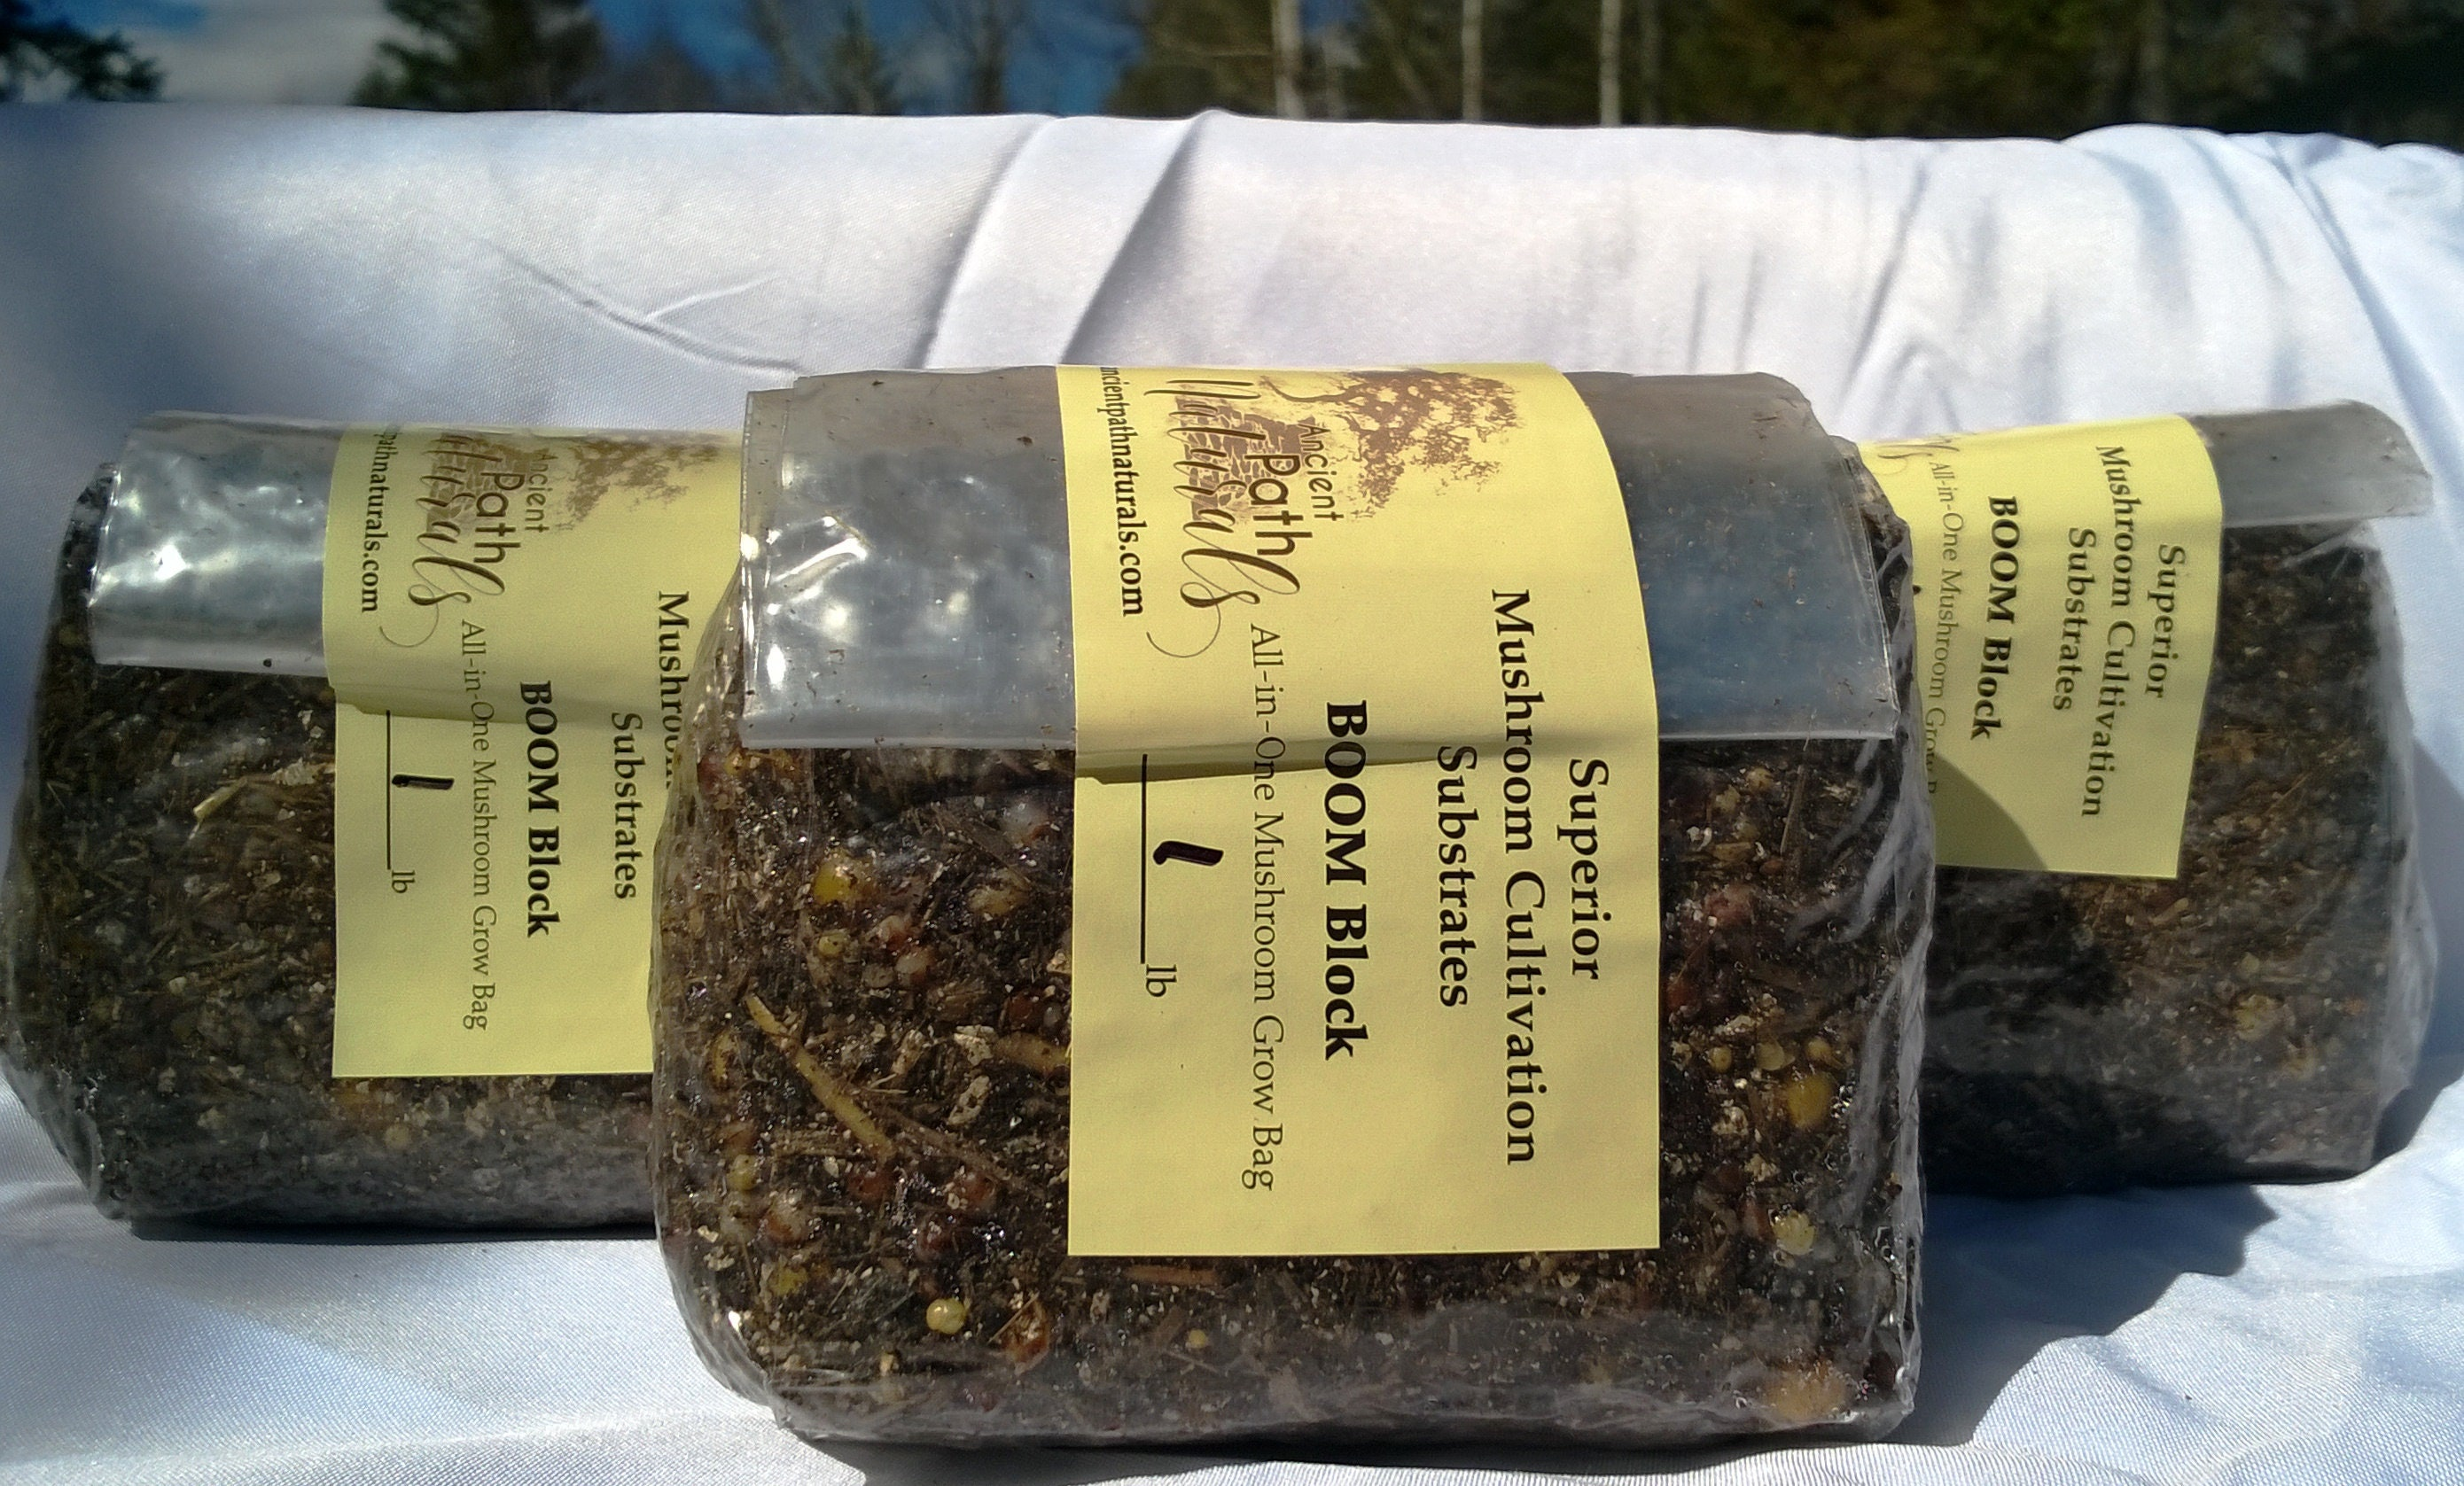 1lb BOOM Block x2 +1 FREE Sterilized Spawn Bags * Just Add spores! Easy  Home Grows for Mushrooms of Any Kind! Fastest Tek * FREE Shipping